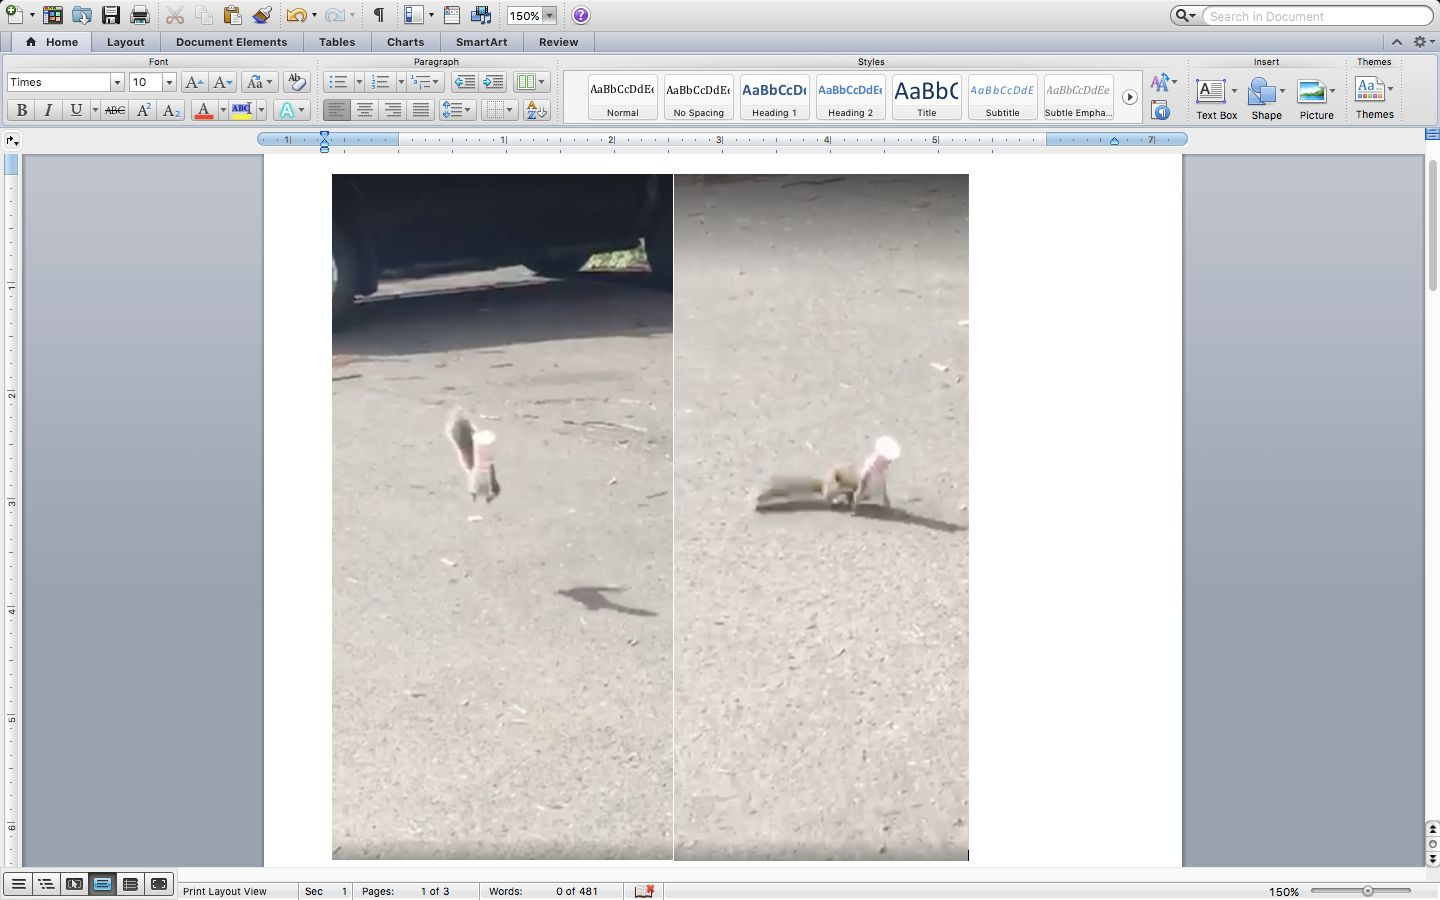 A squirrel is seen bouncing around like a jumping bean after getting a cup stuck on its head.